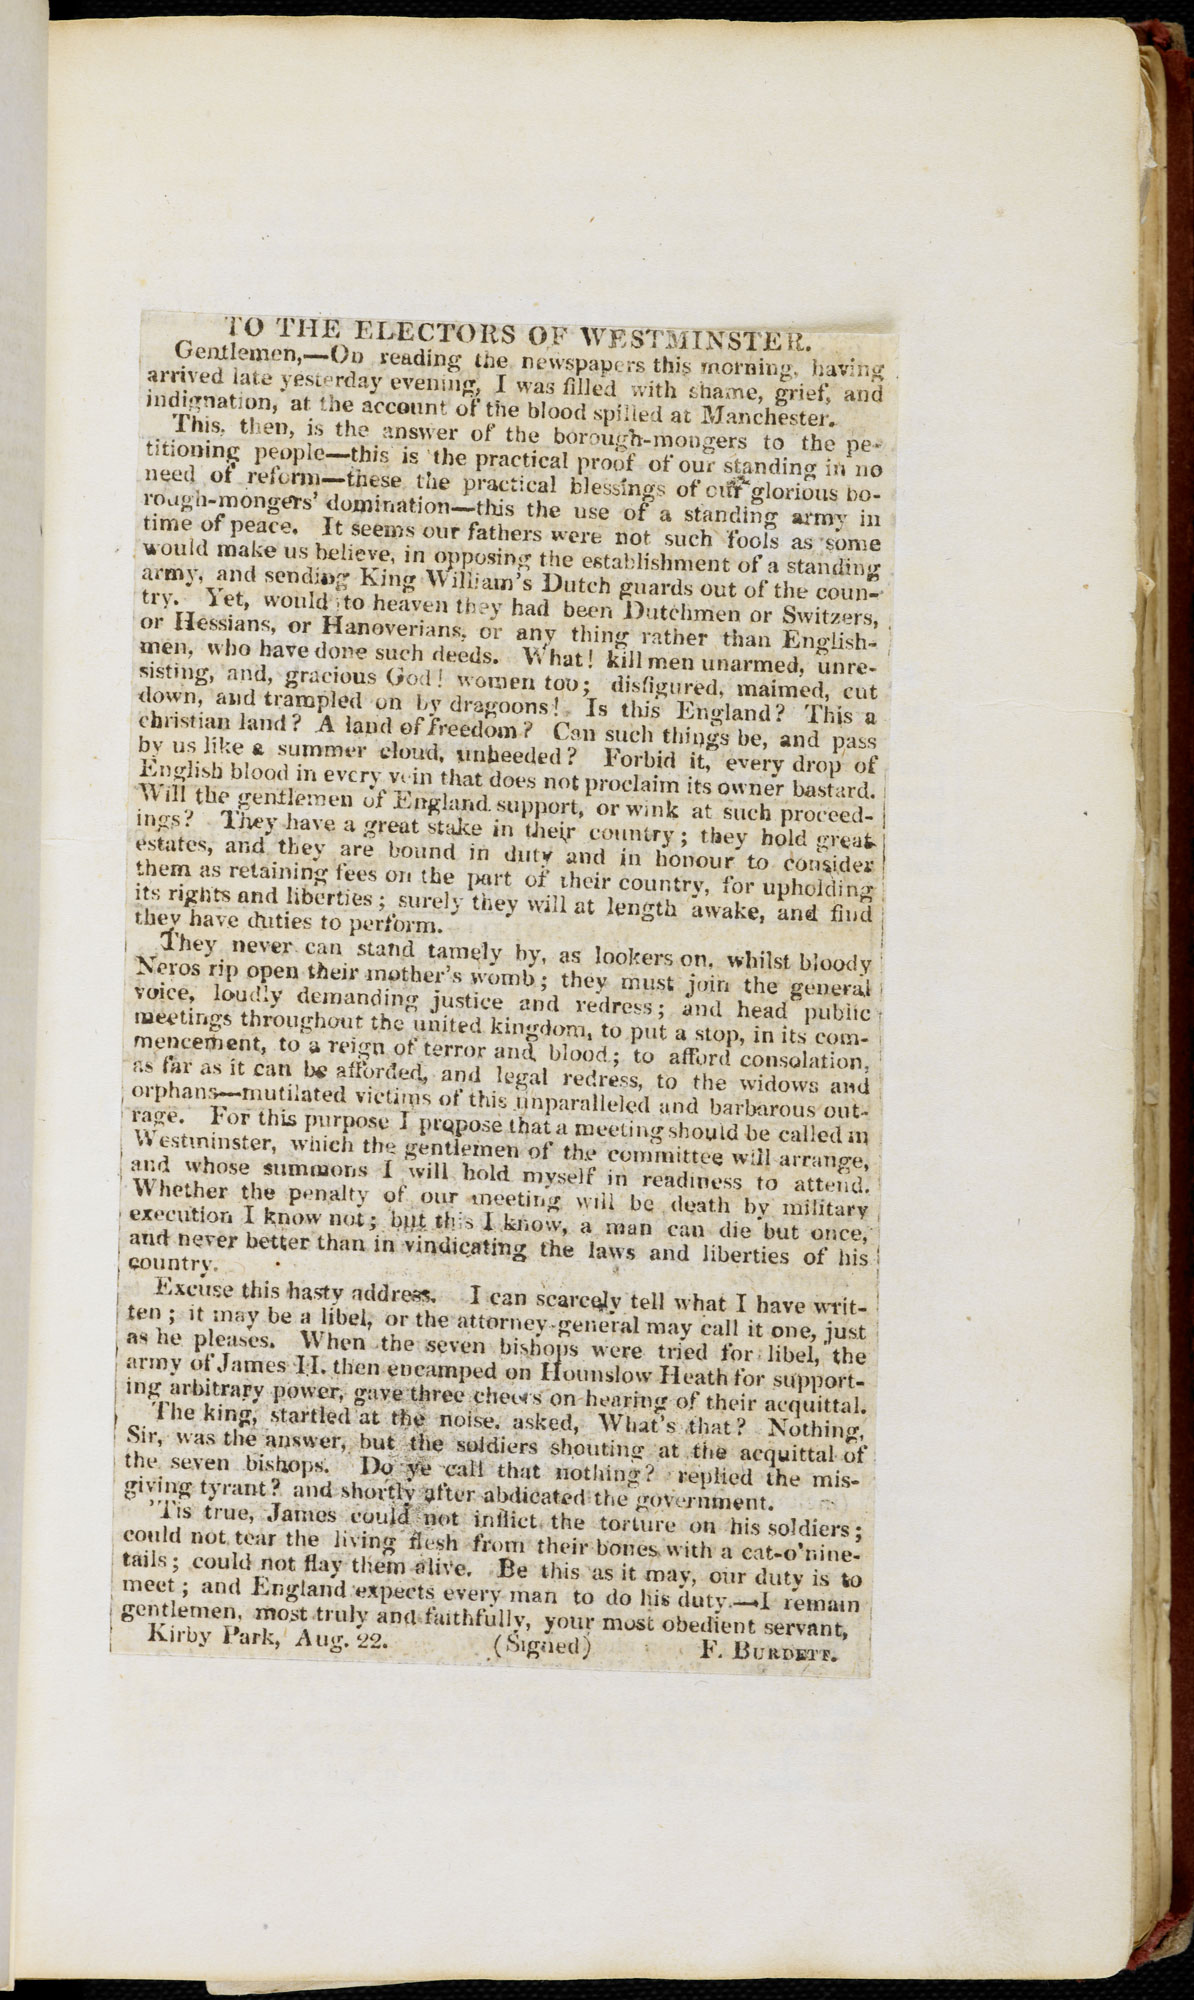 Newspaper cuttings of letters relating to the Peterloo Massacre [page: pasted at end of pamphlet ['To the electors of Westminster']]